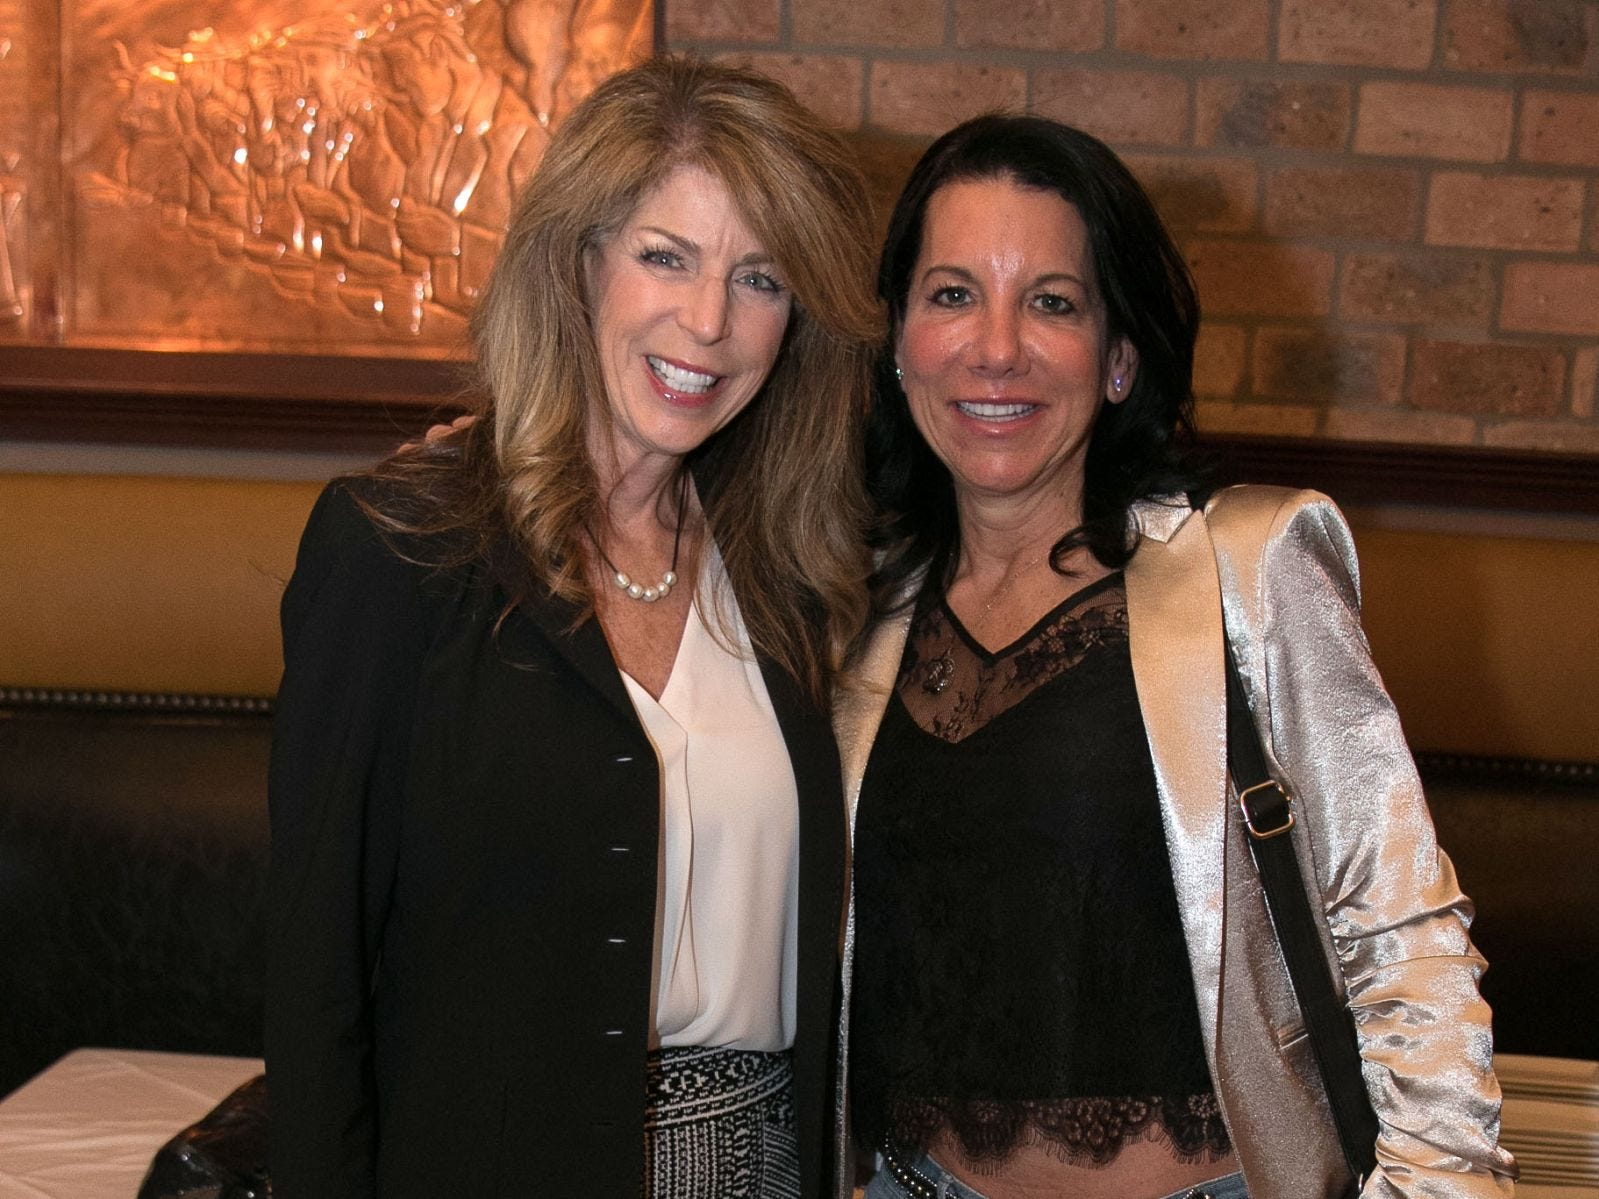 Kathy Rotella, Felicia Bechtel. Christina Gibbons of Special Properties held a cocktail reception to acknowledge her clients at Roots Steakhouse in Ridgewood. 02/07/2019